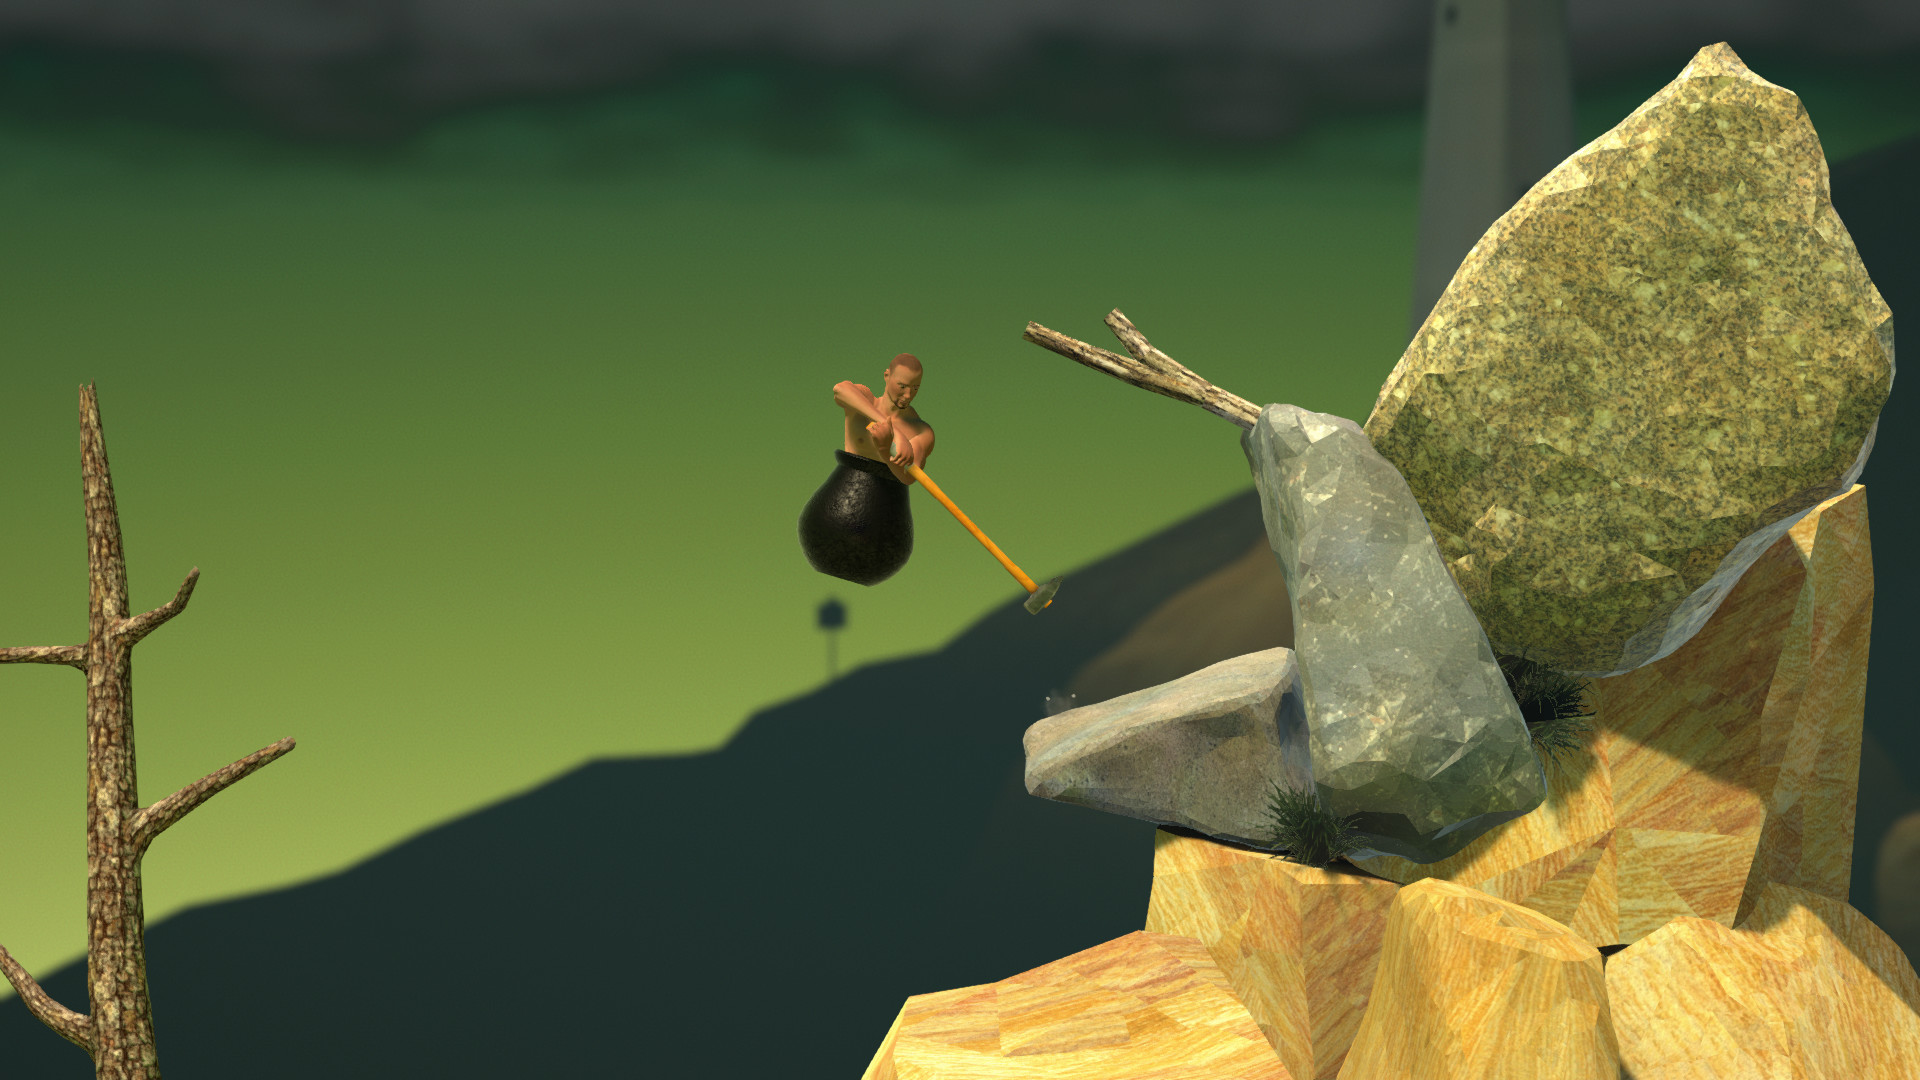 Getting Over It With Bennett Foddy For Mac